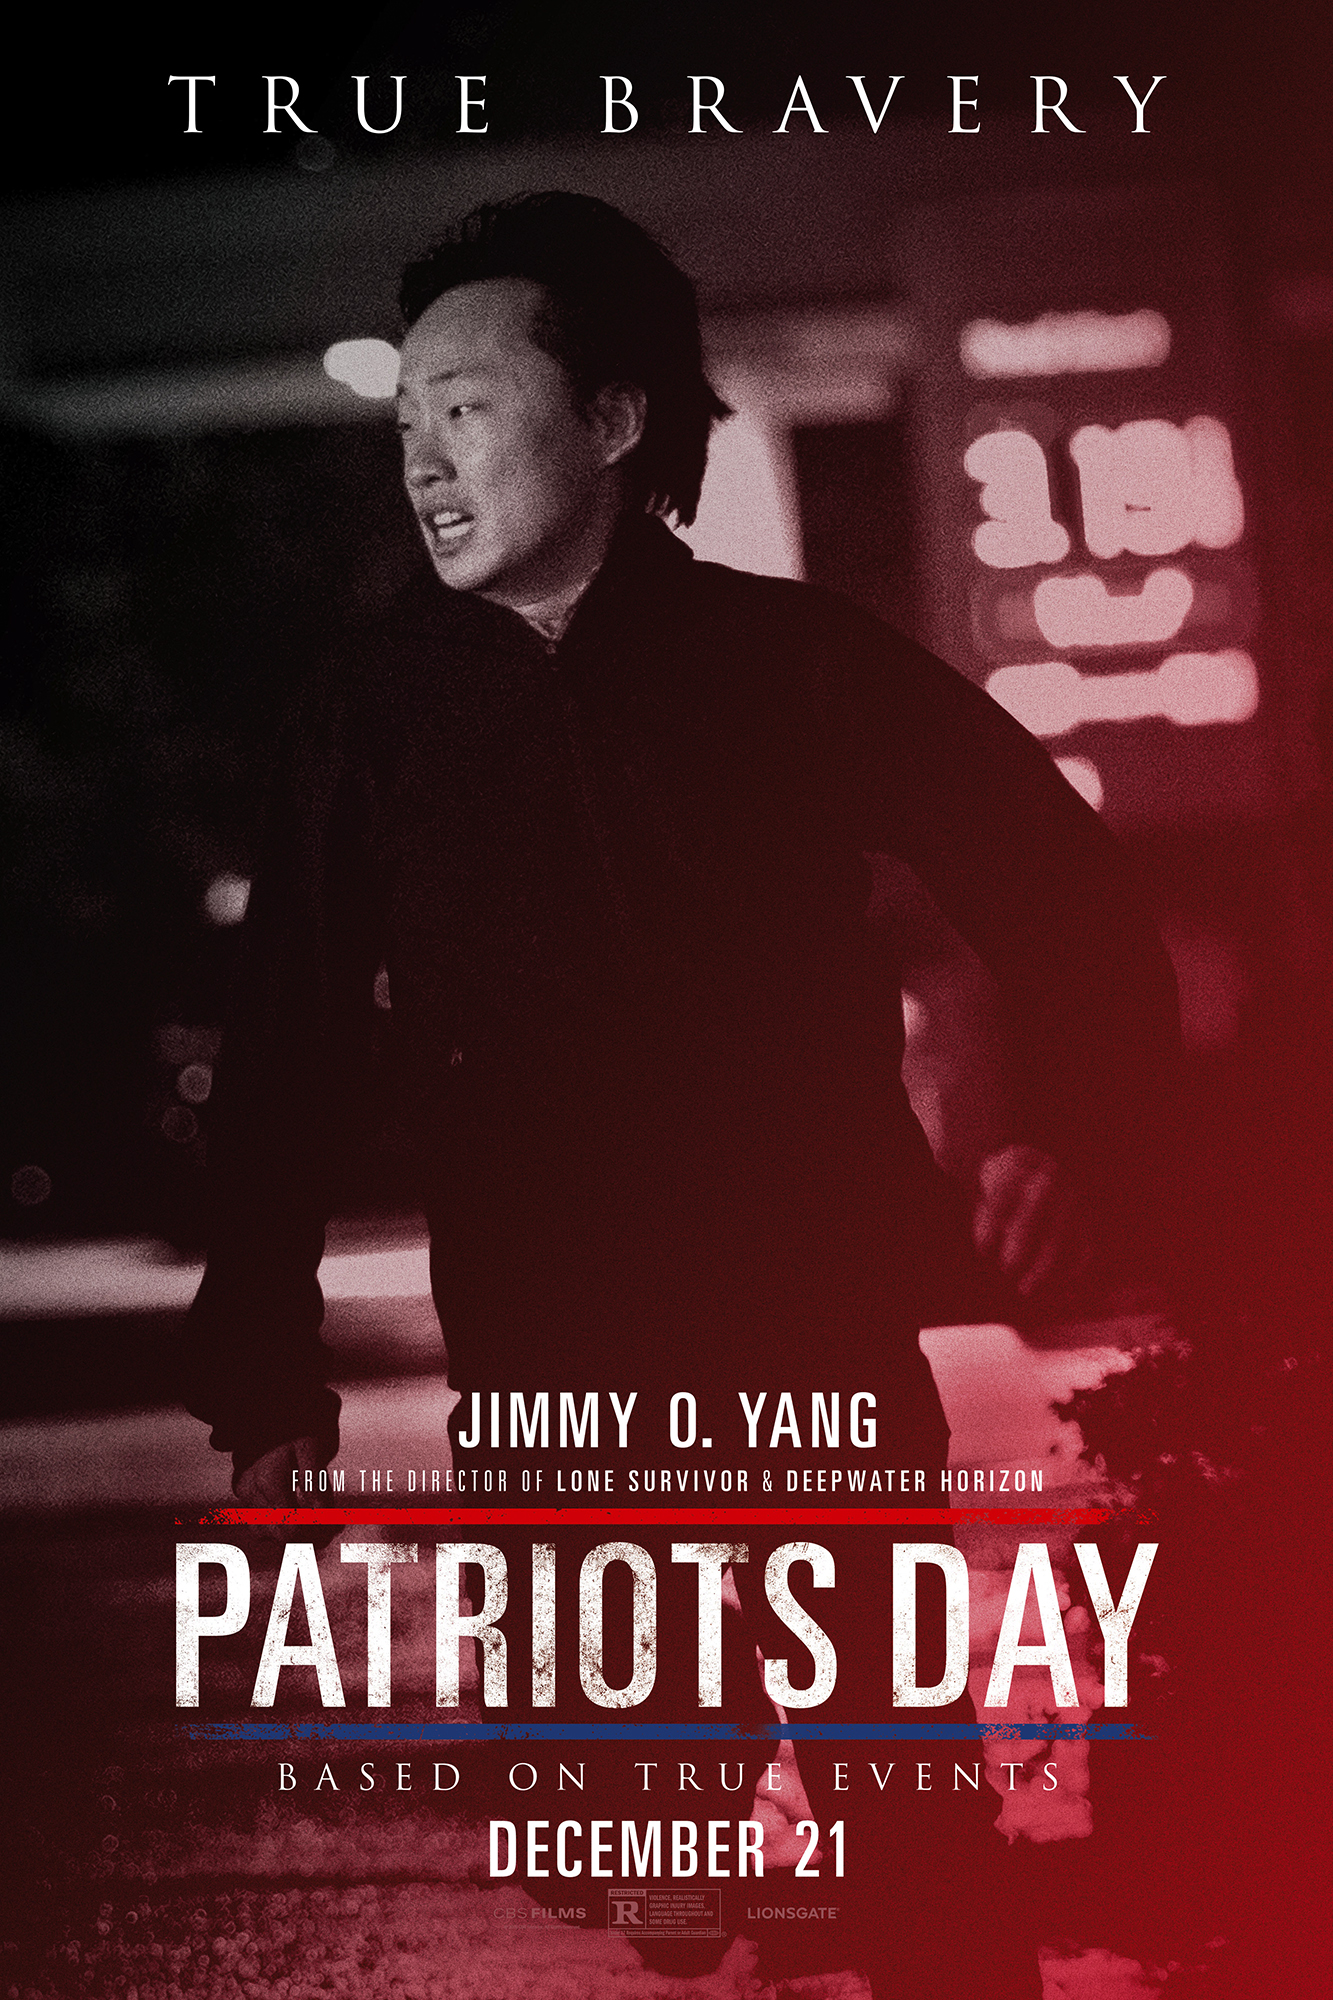 PatriotsDay_JOY_48x72_WildPostings_100dpi.jpg